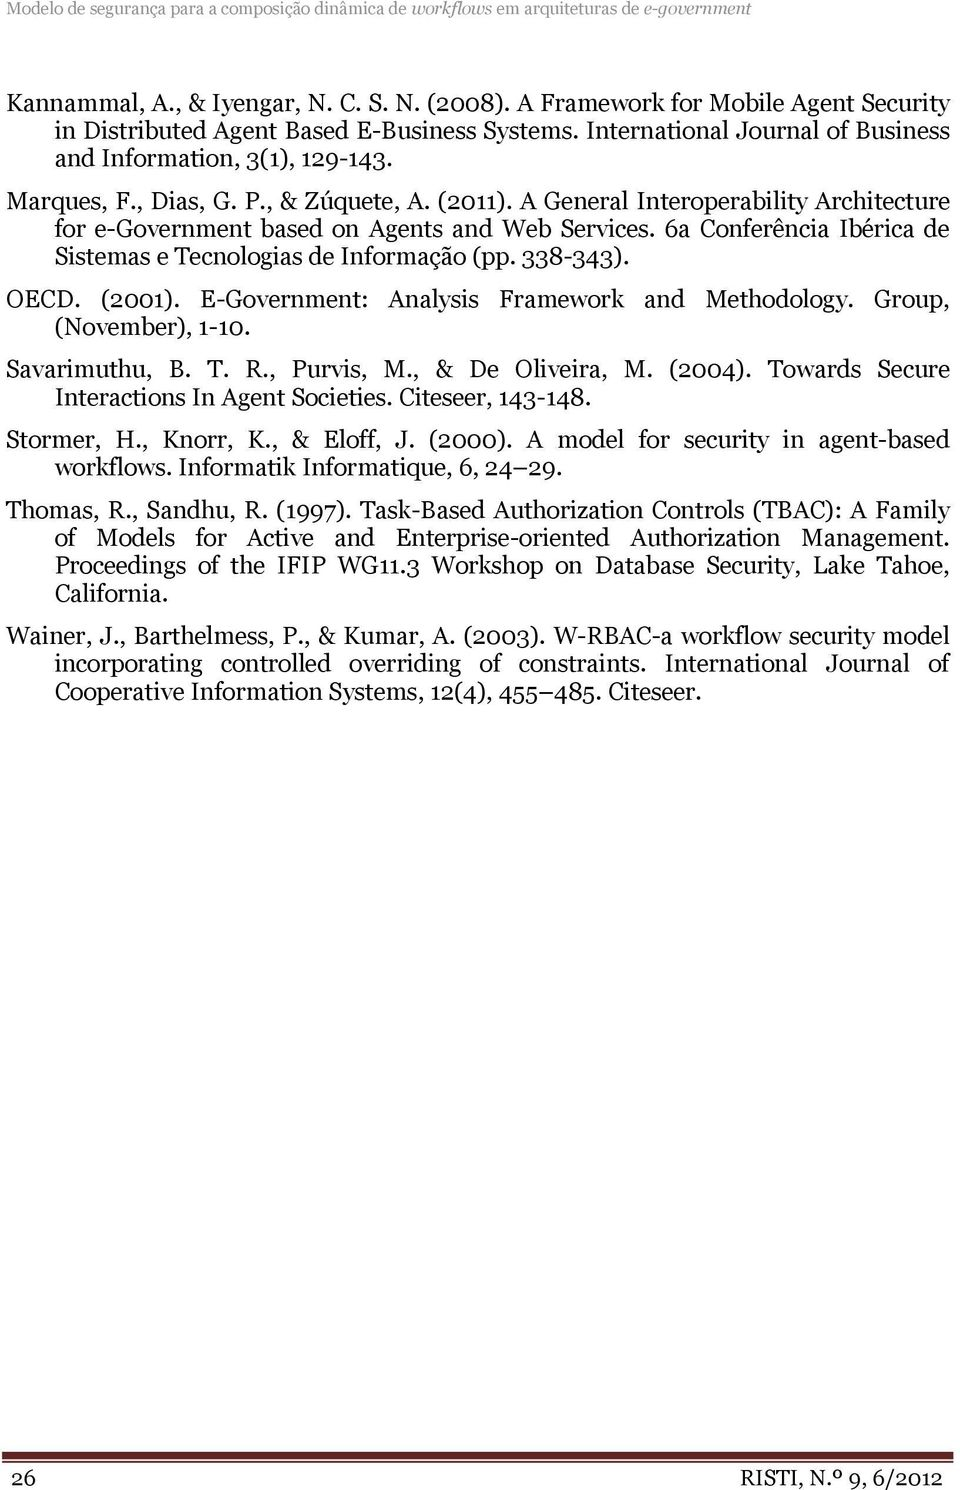 A General Interoperability Architecture for e-government based on Agents and Web Services. 6a Conferência Ibérica de Sistemas e Tecnologias de Informação (pp. 338-343). OECD. (2001).